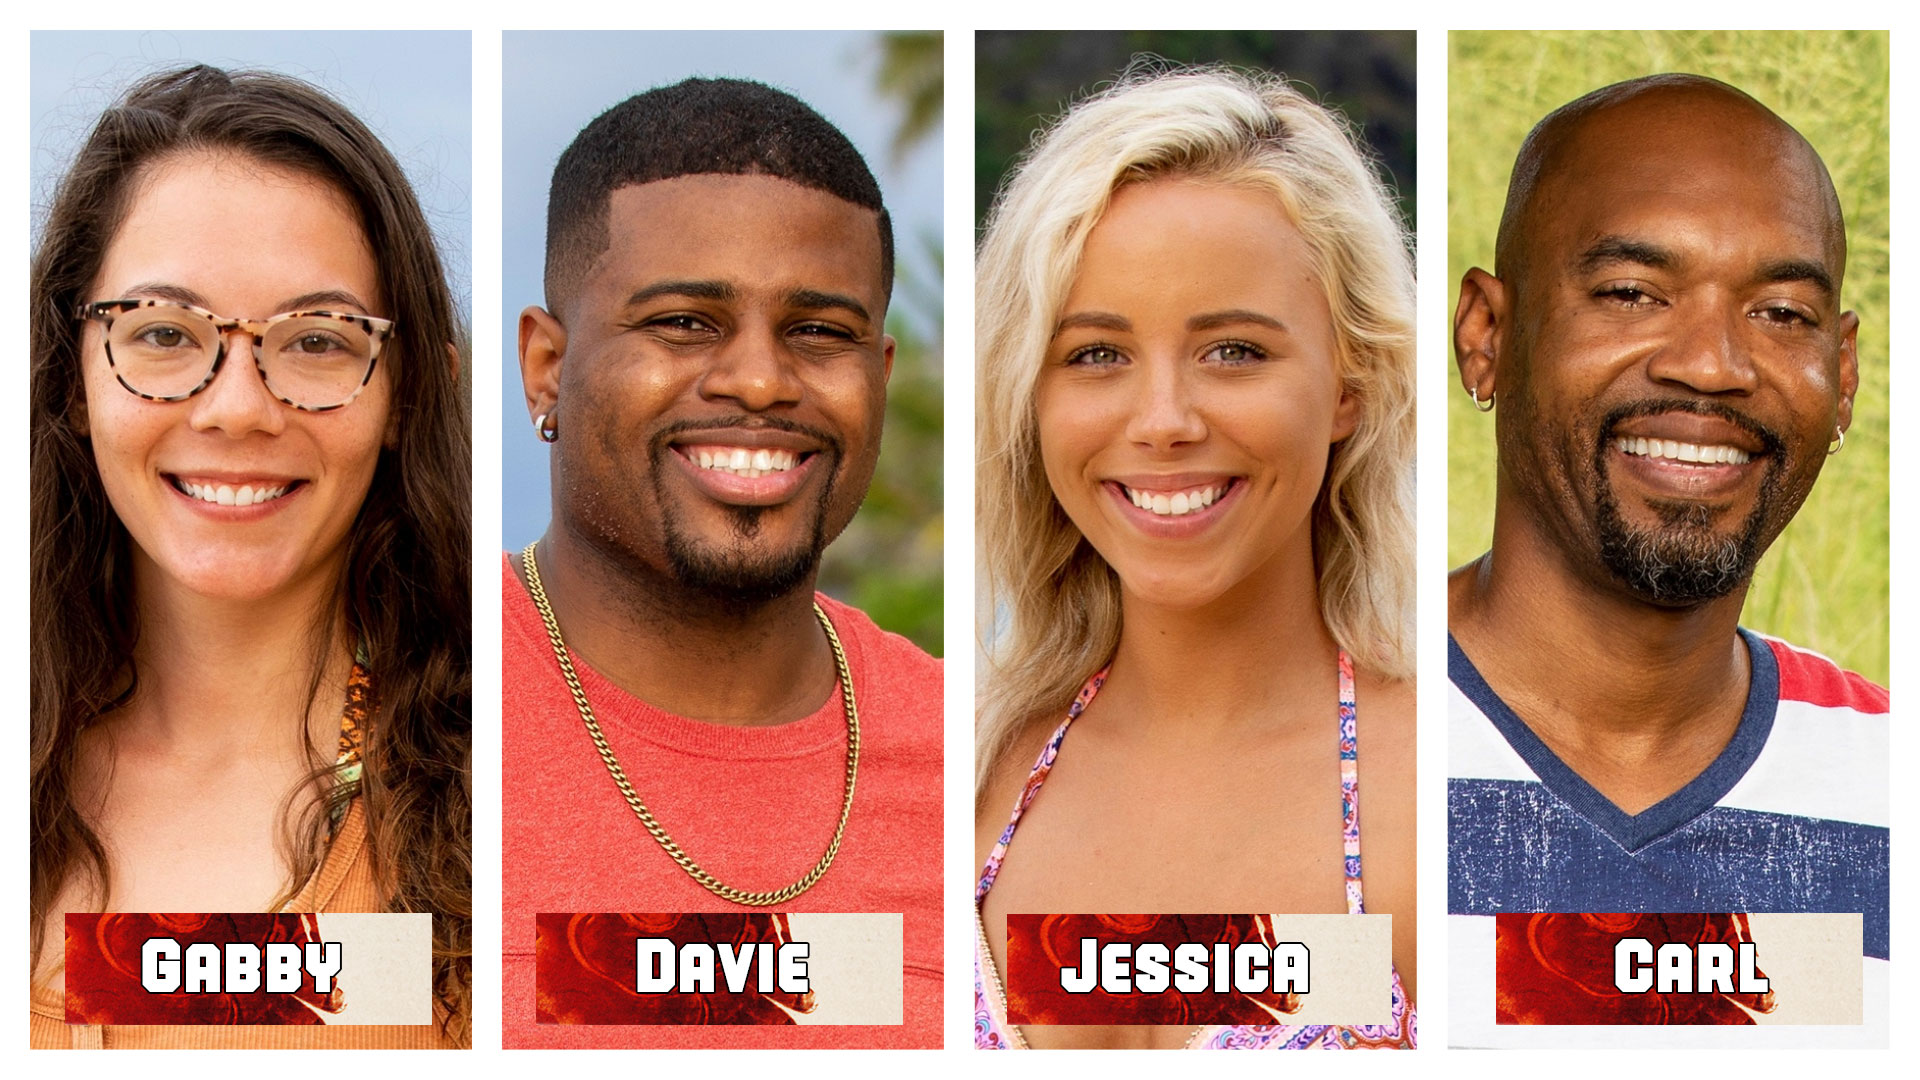 Which David Tribe member found a Hidden Immunity Idol in Episode 2?